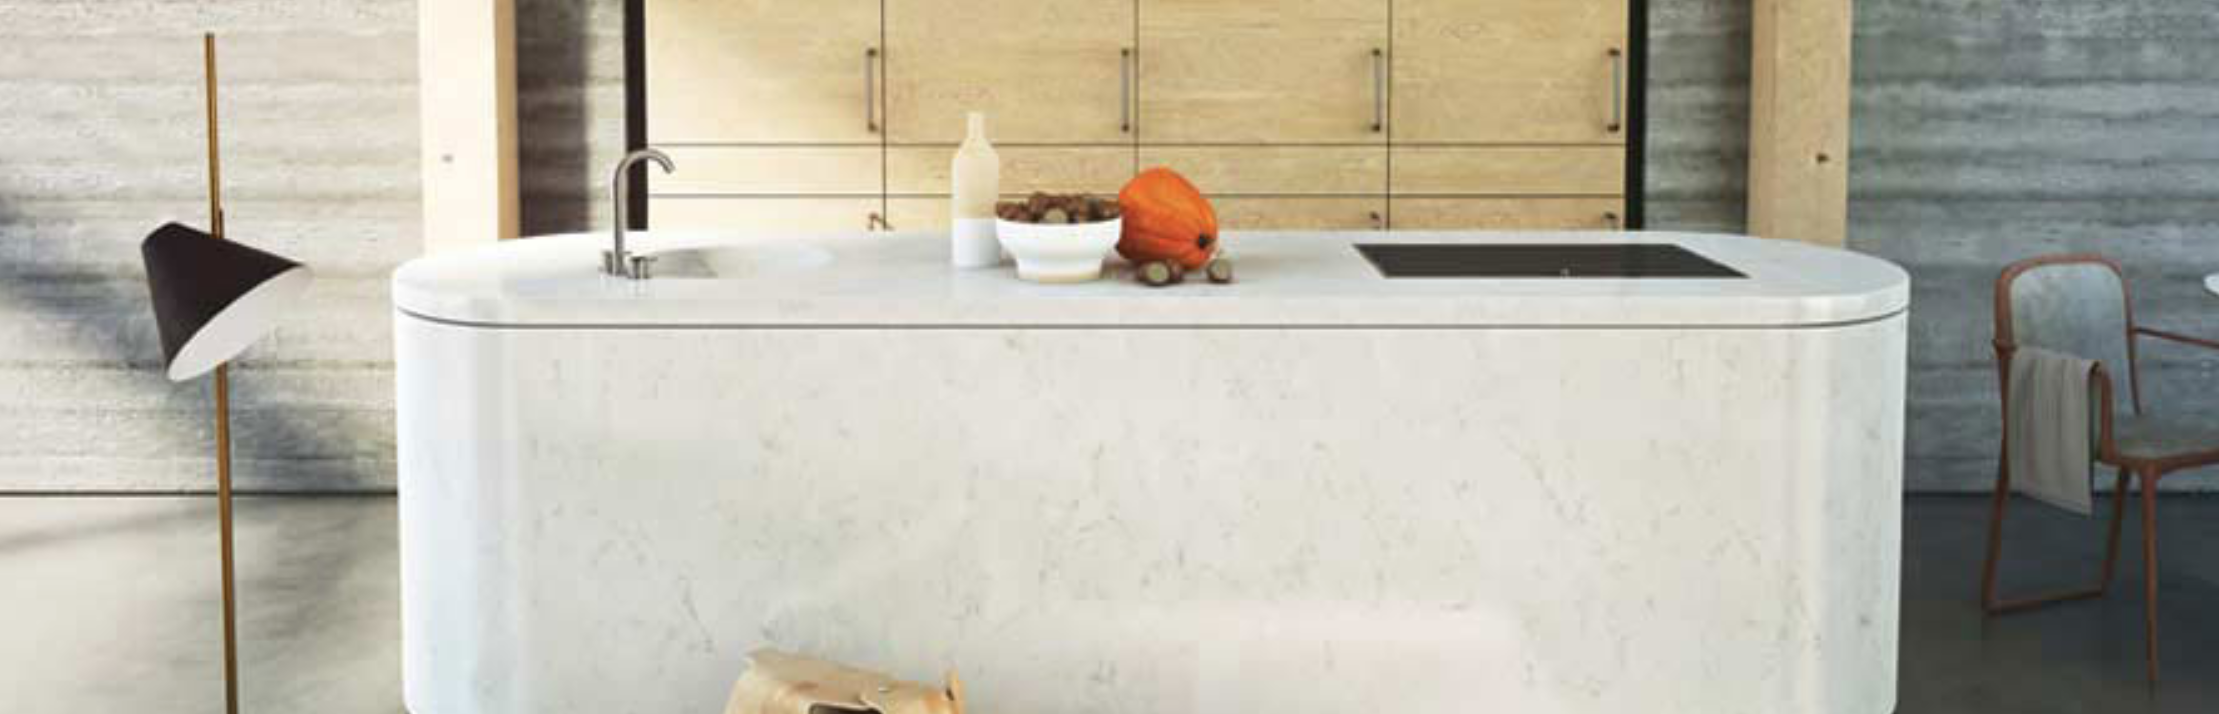 CAESARSTONE | FROSTY CARRINA | KITCHEN ISLAND